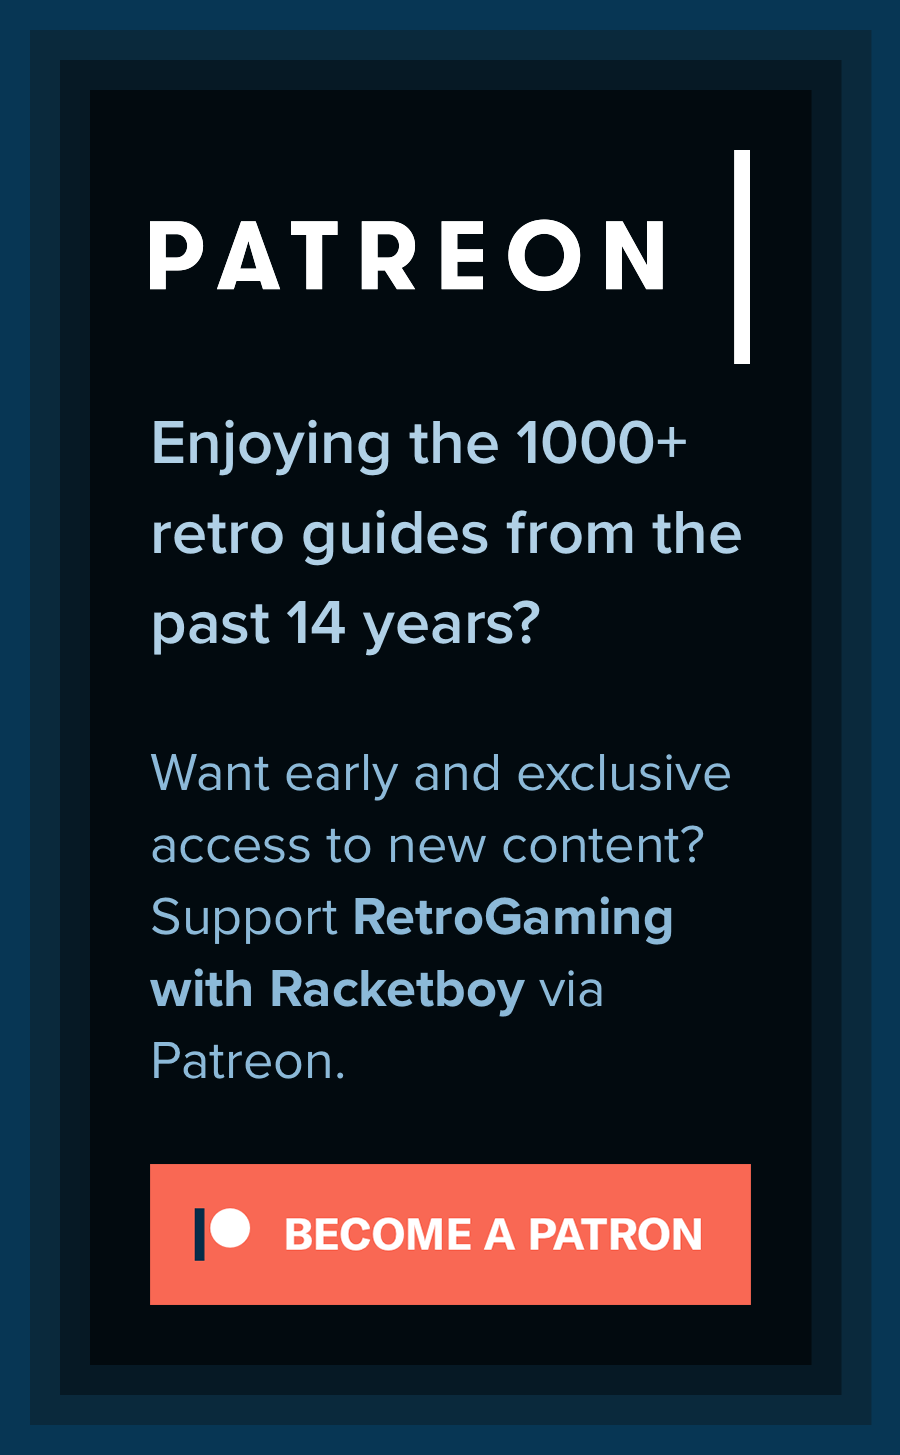 Support RetroGaming with Racketboy via Patreon